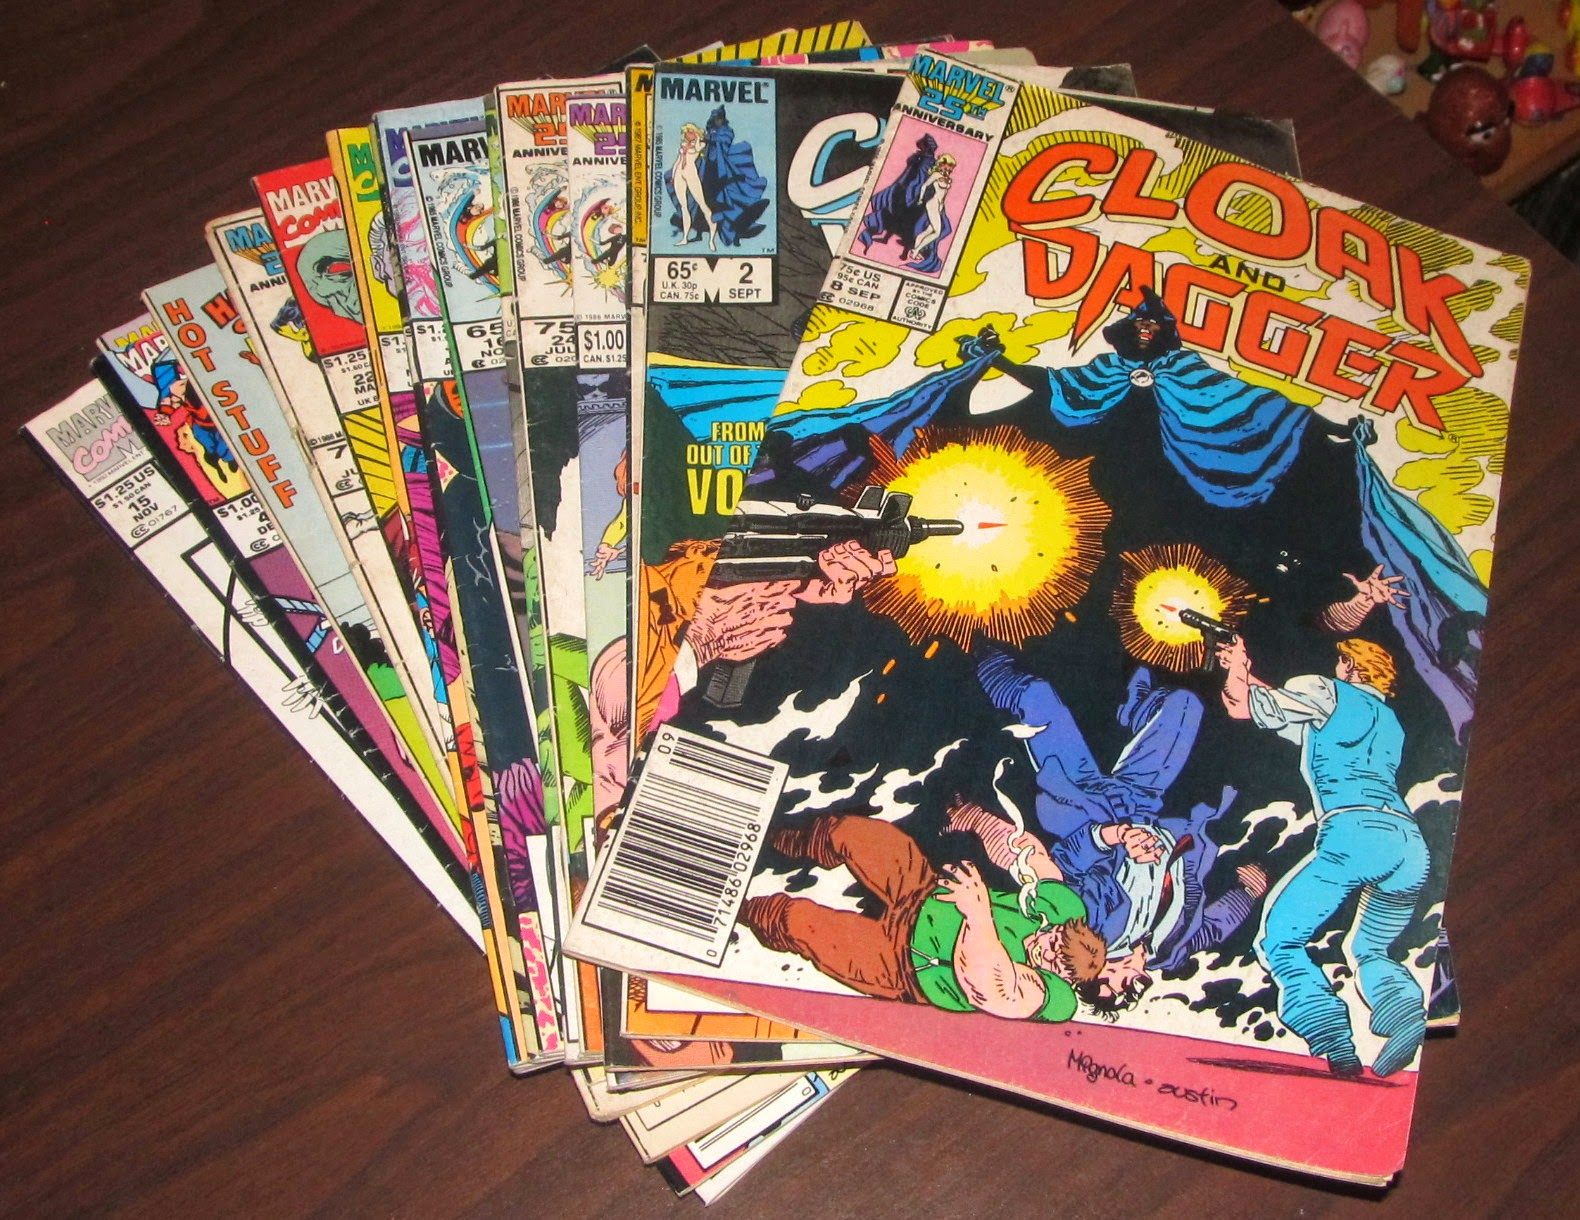 American comic books are more flat wider and longer in length as shown in this picture mangas are smaller thicker and built more like regular books